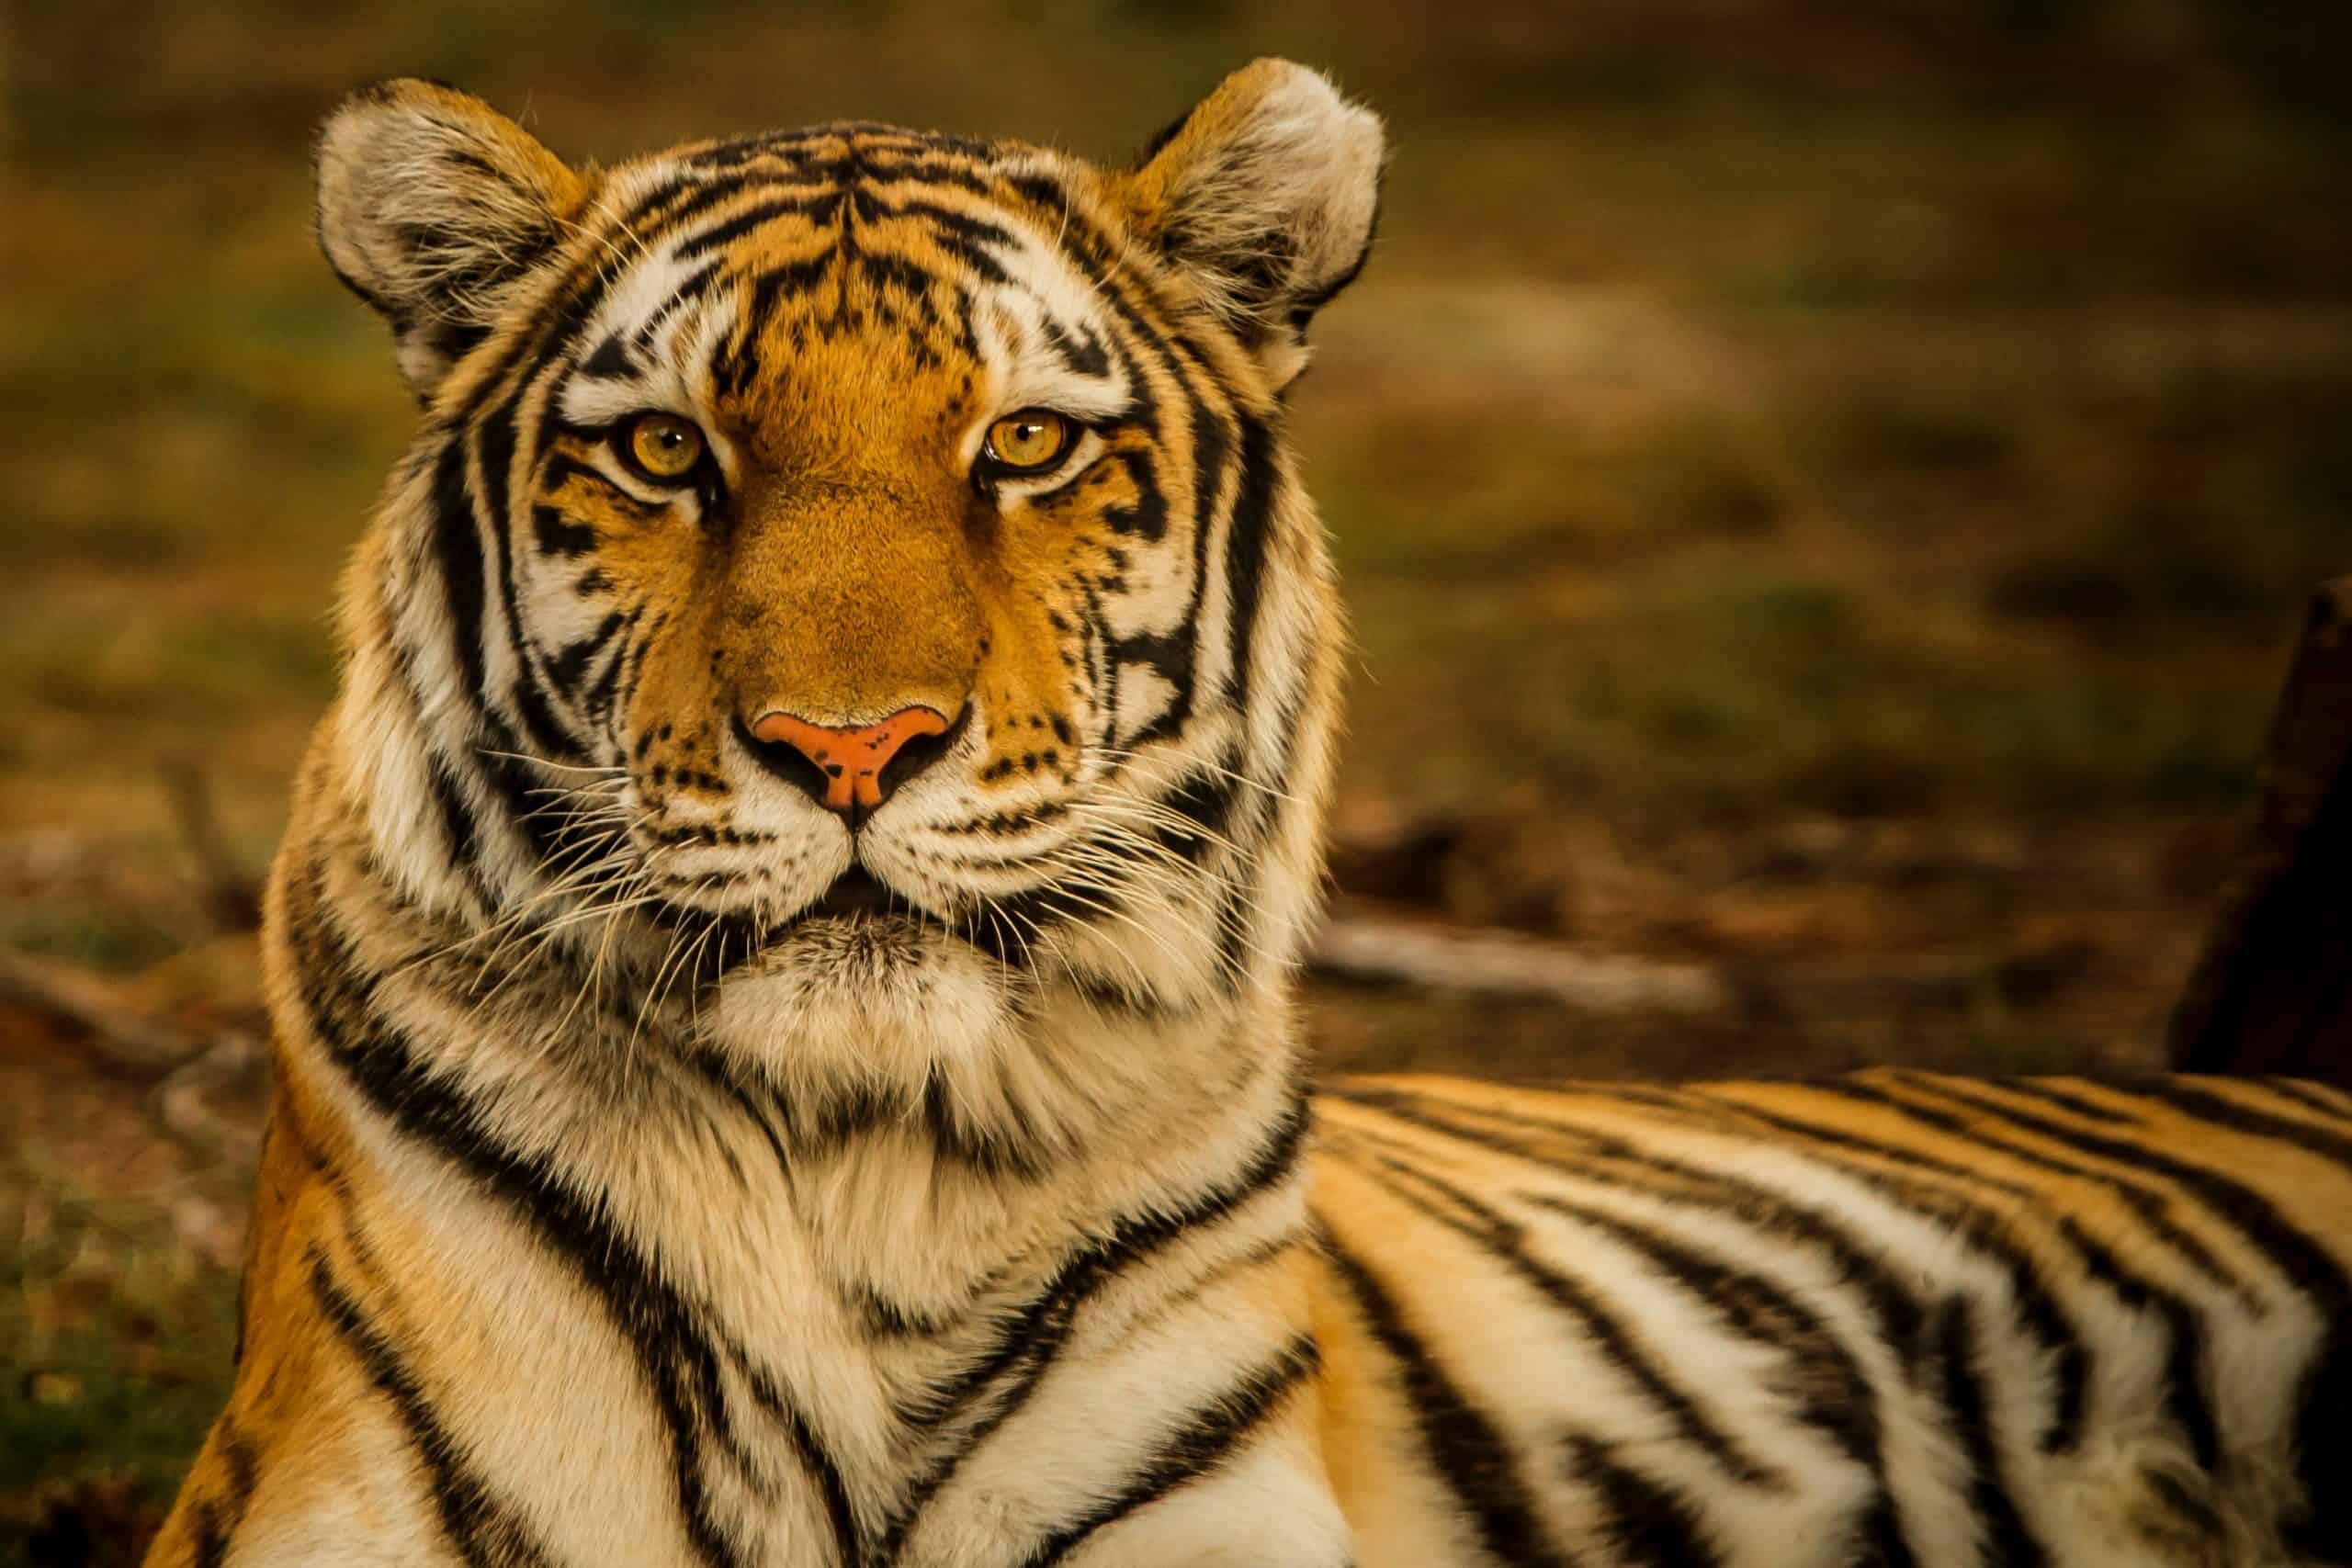 Top 5 Tiger Facts That You Need to Know